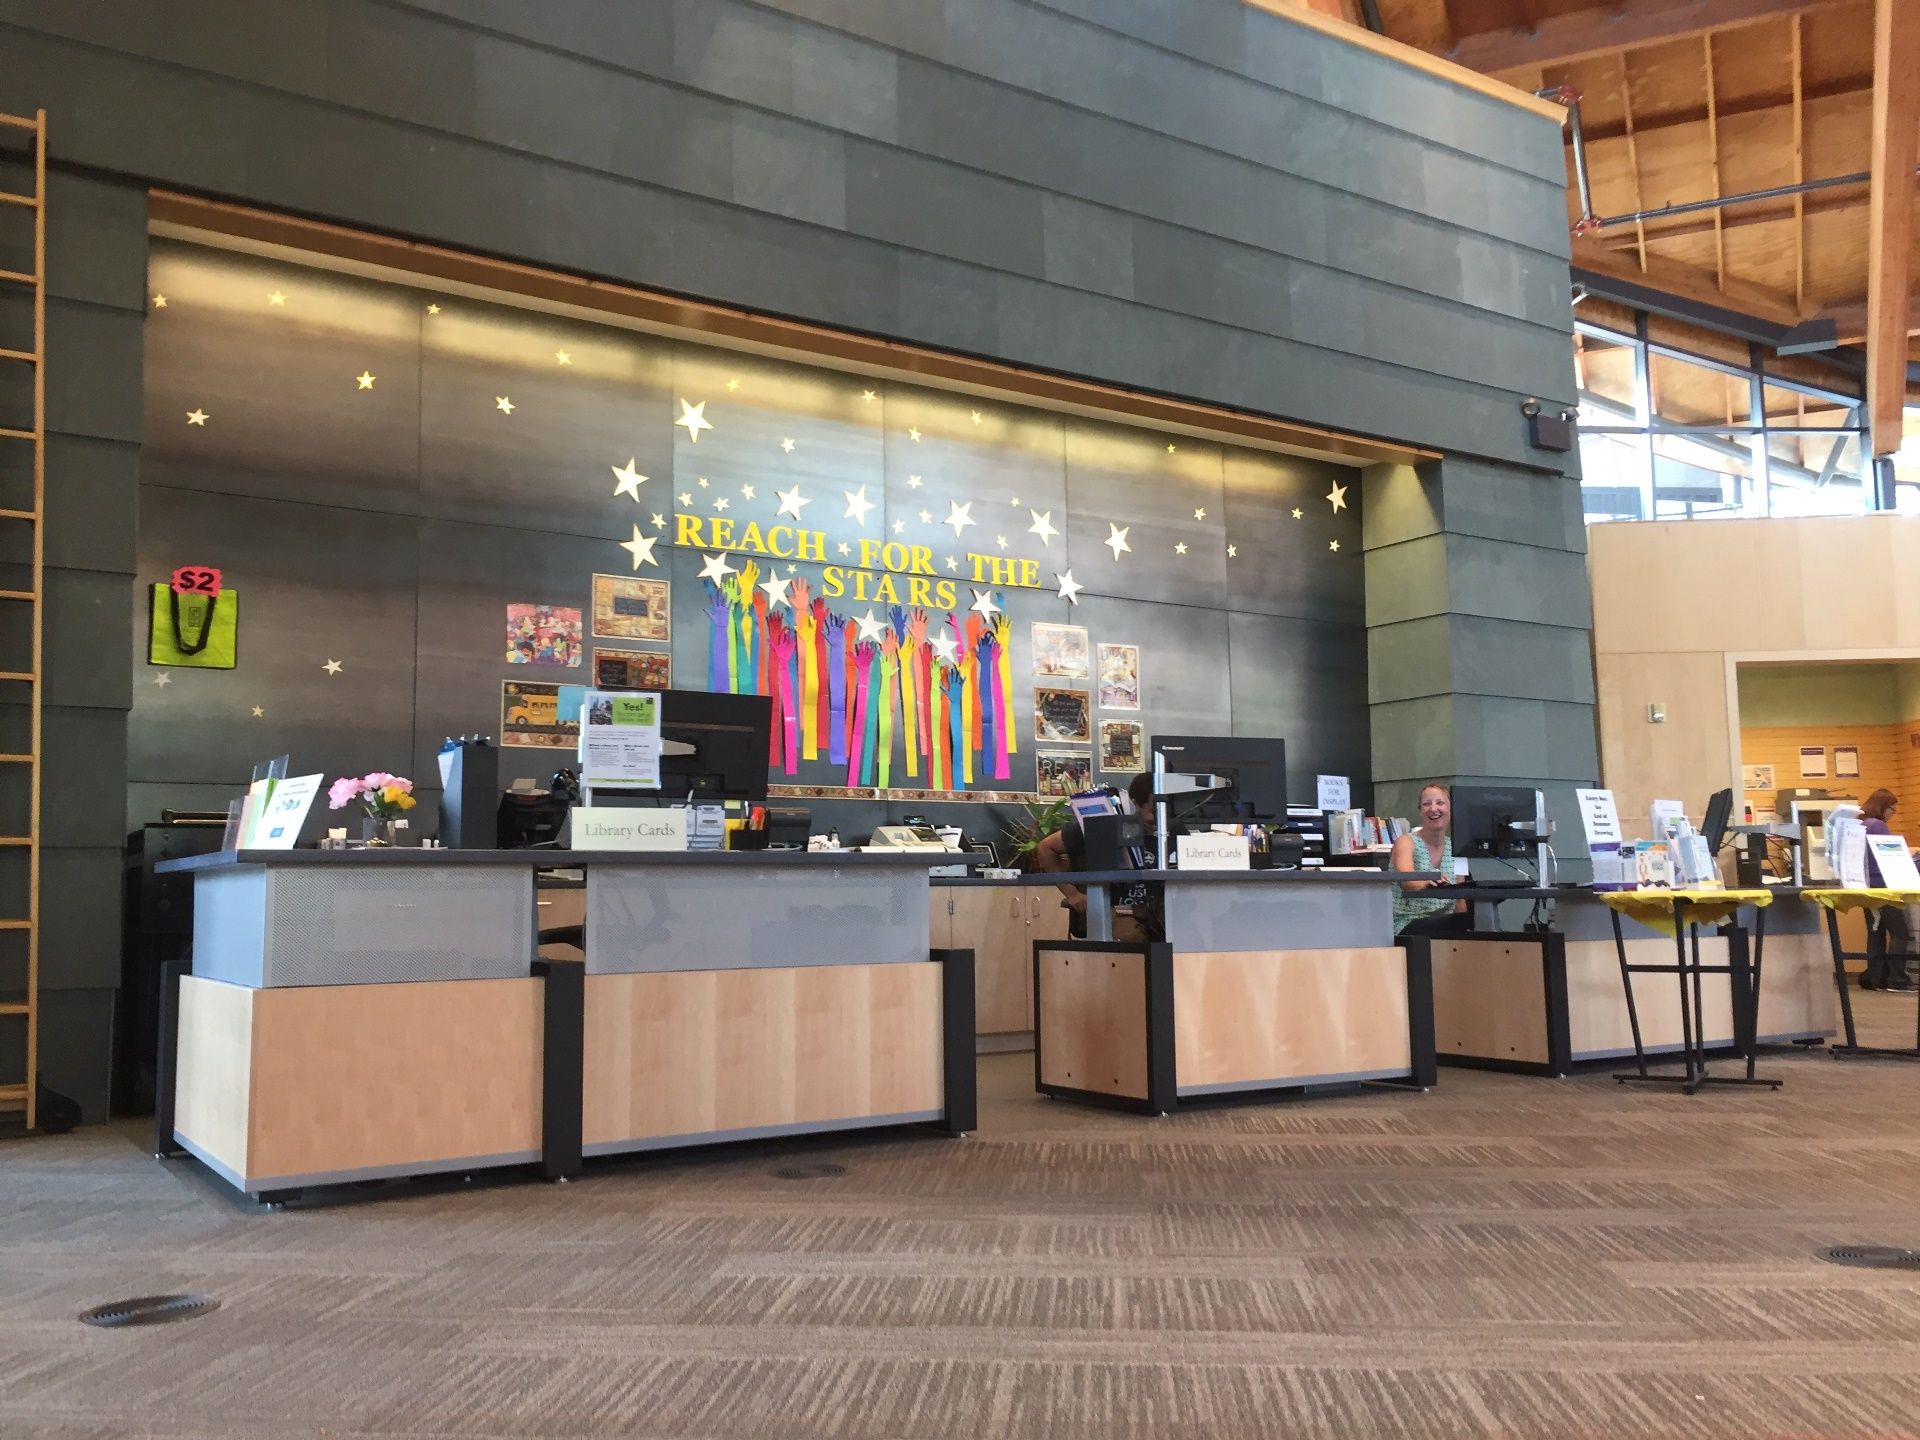 Seattle Public Library: Beacon Hill Branch Photo